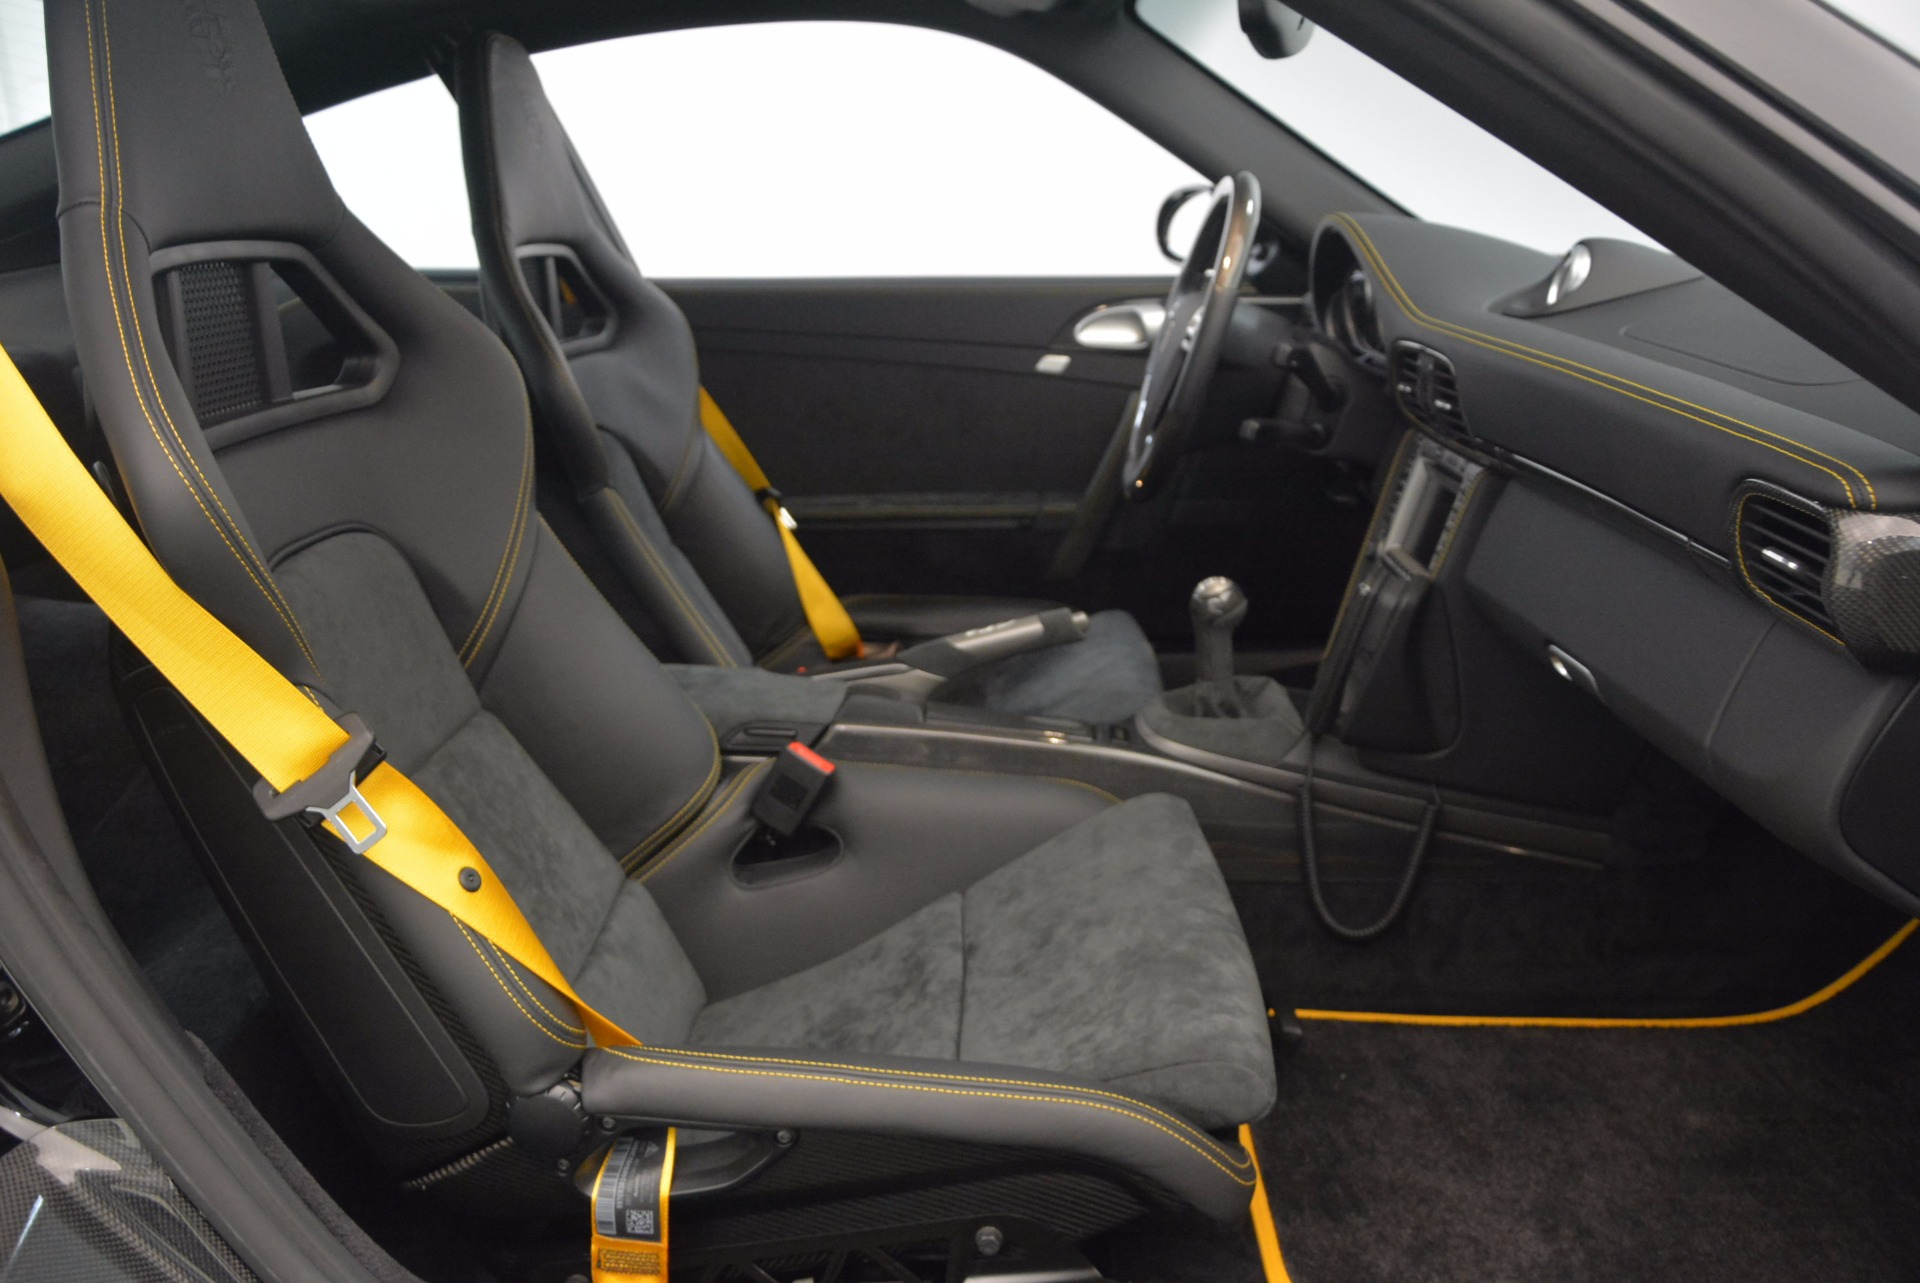 Used 2008 Porsche 911 GT2 For Sale In Greenwich, CT 1400_p18